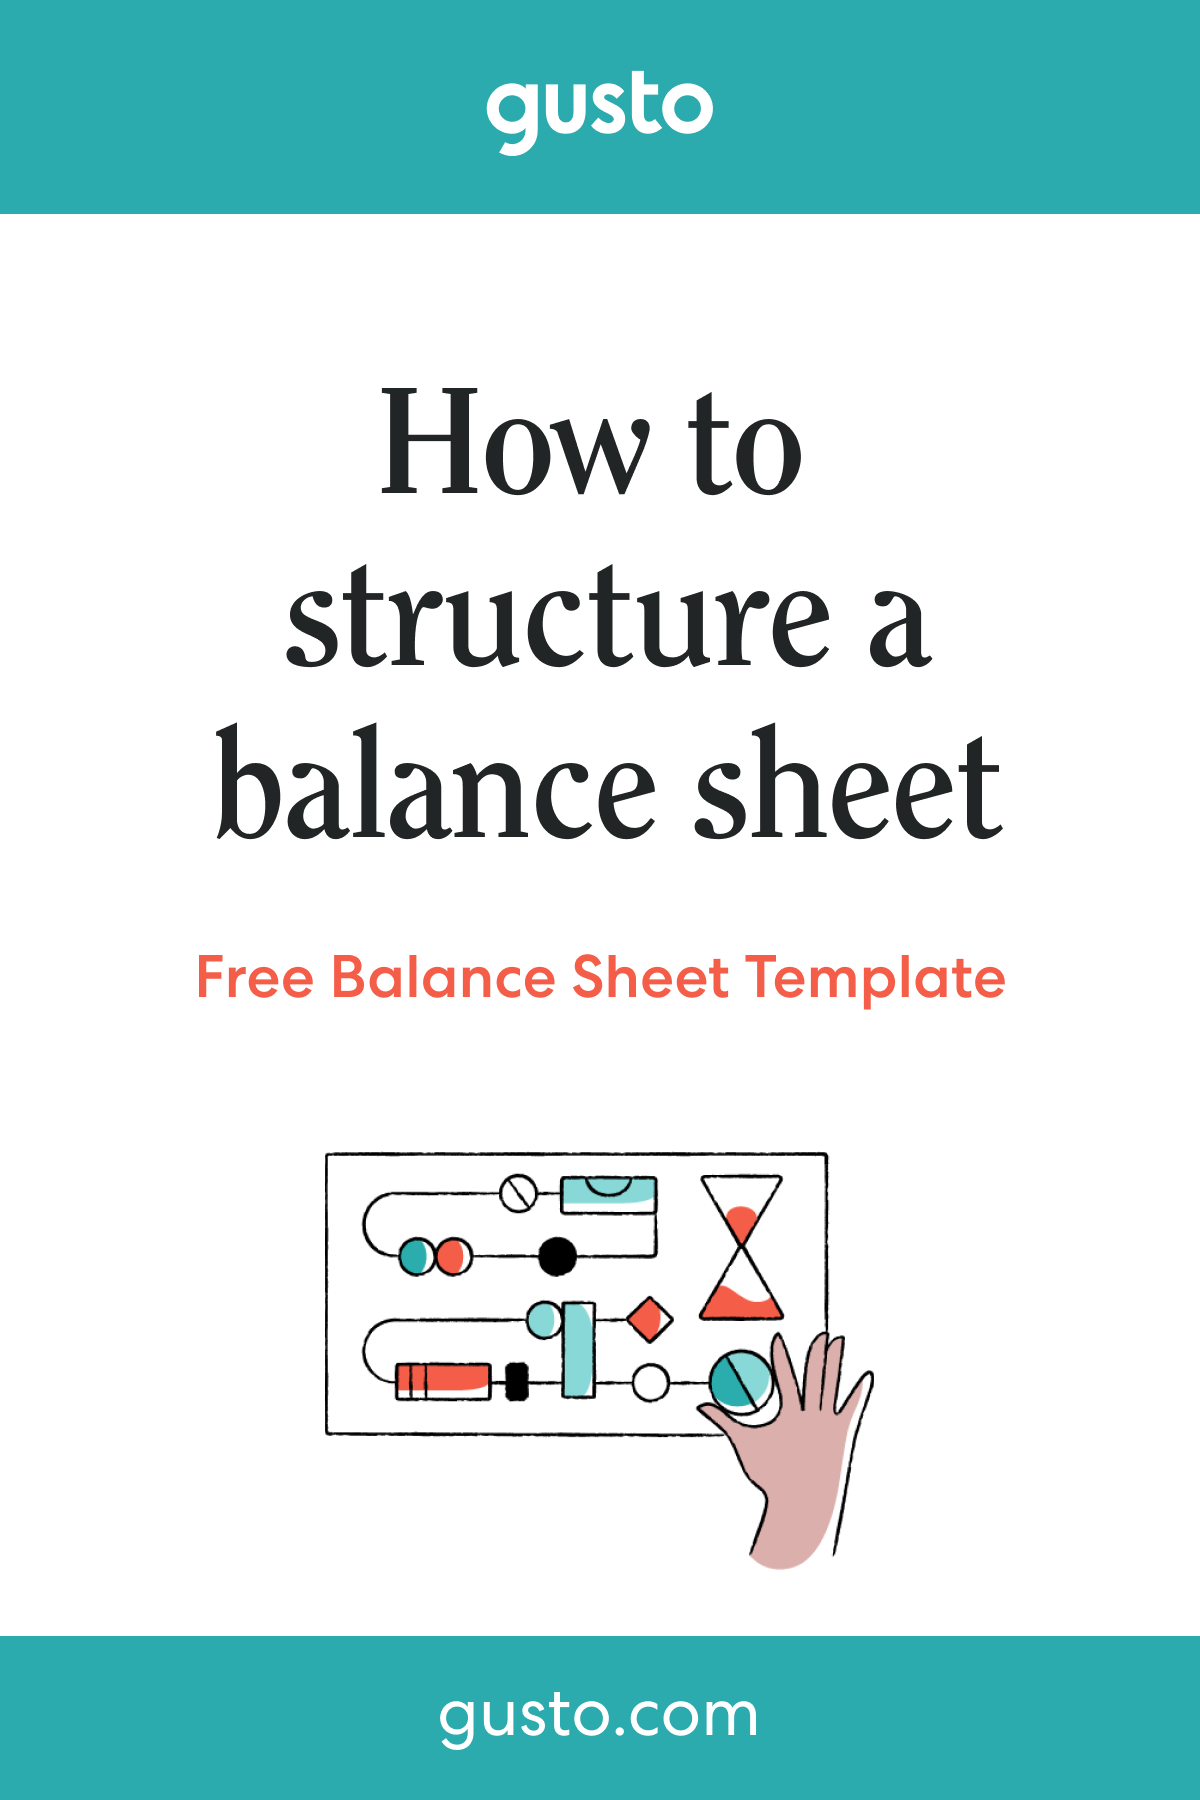 what is a balance sheet and how do i read it free template gusto profit loss statement typical cash flows from investing activities include